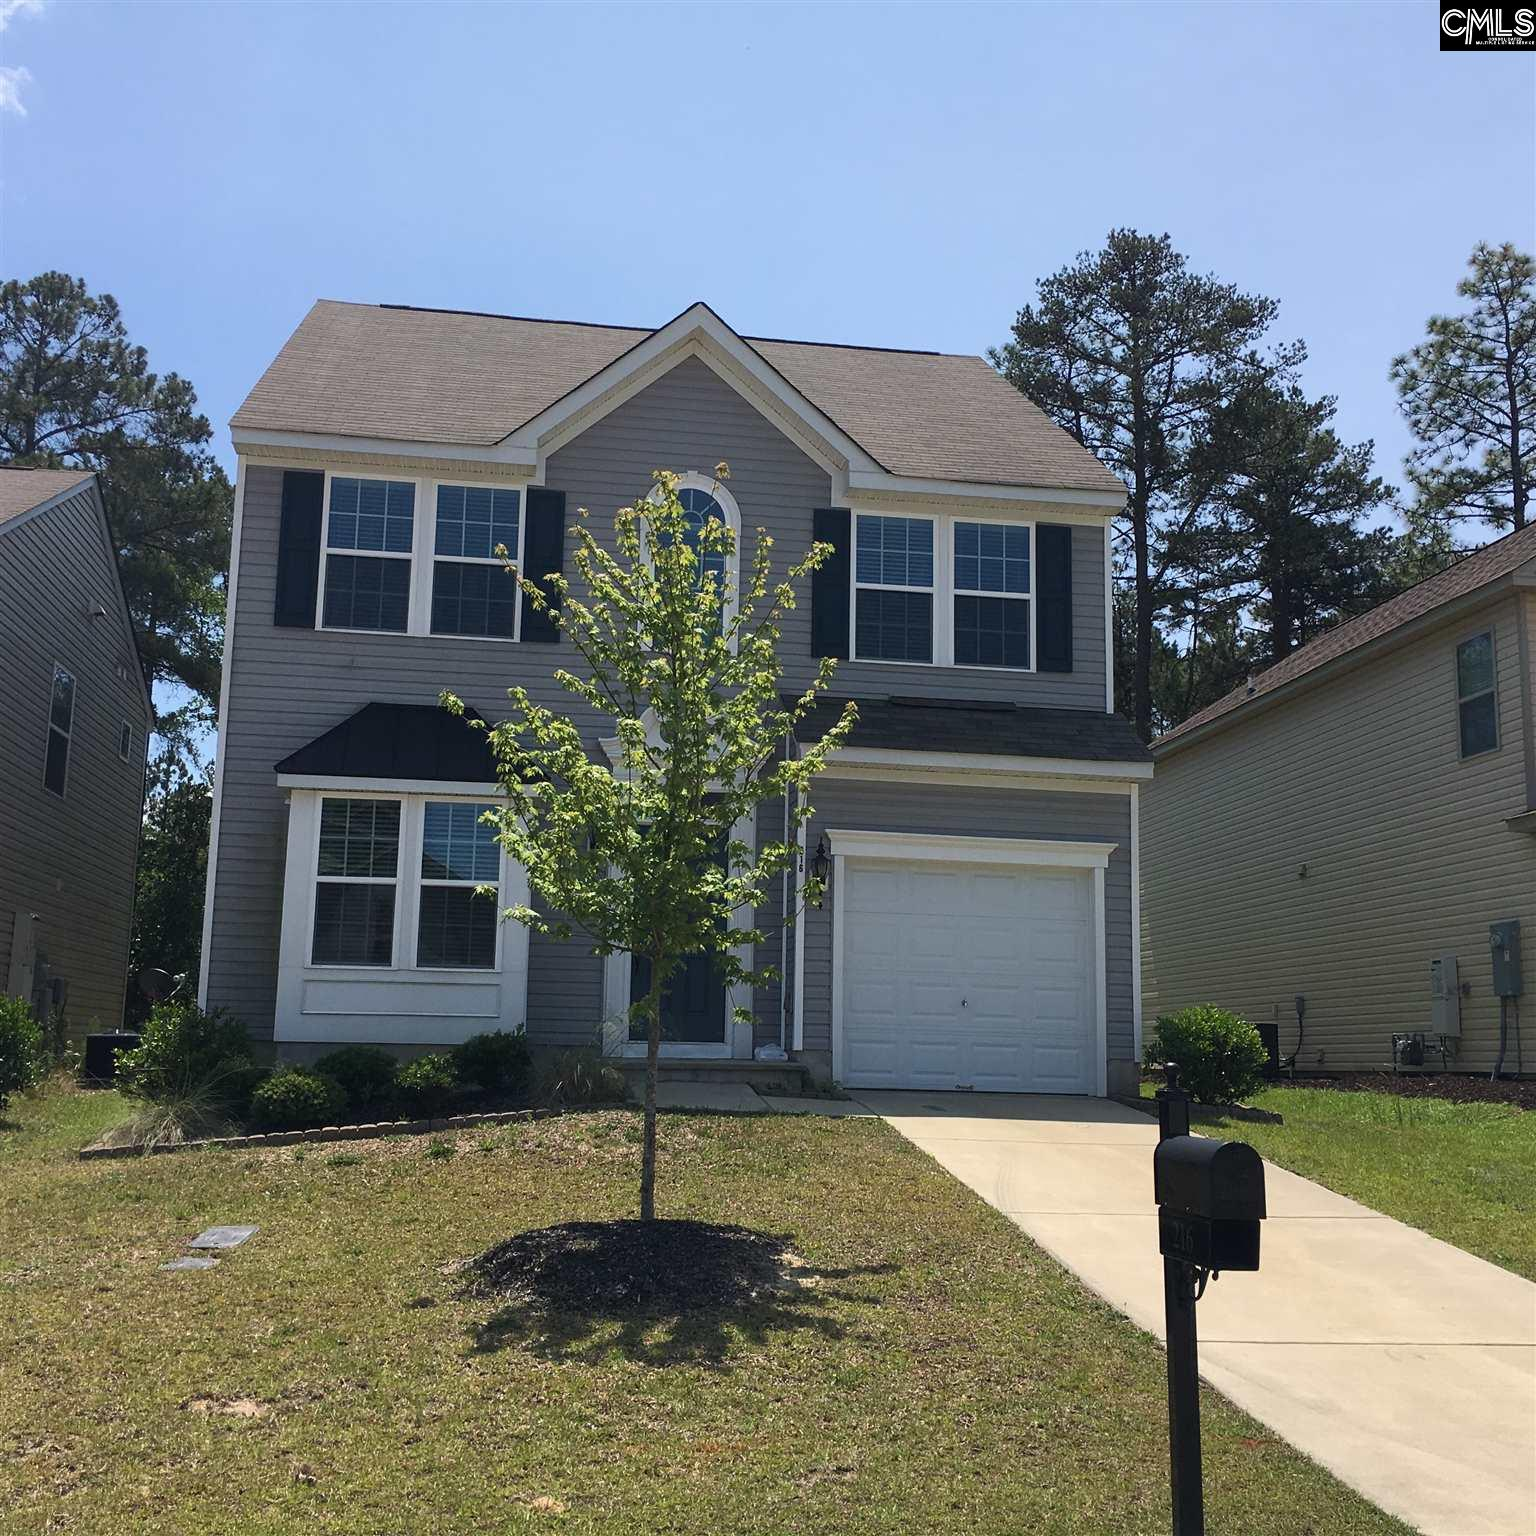 216 Chesterbrook Lexington, SC 29072